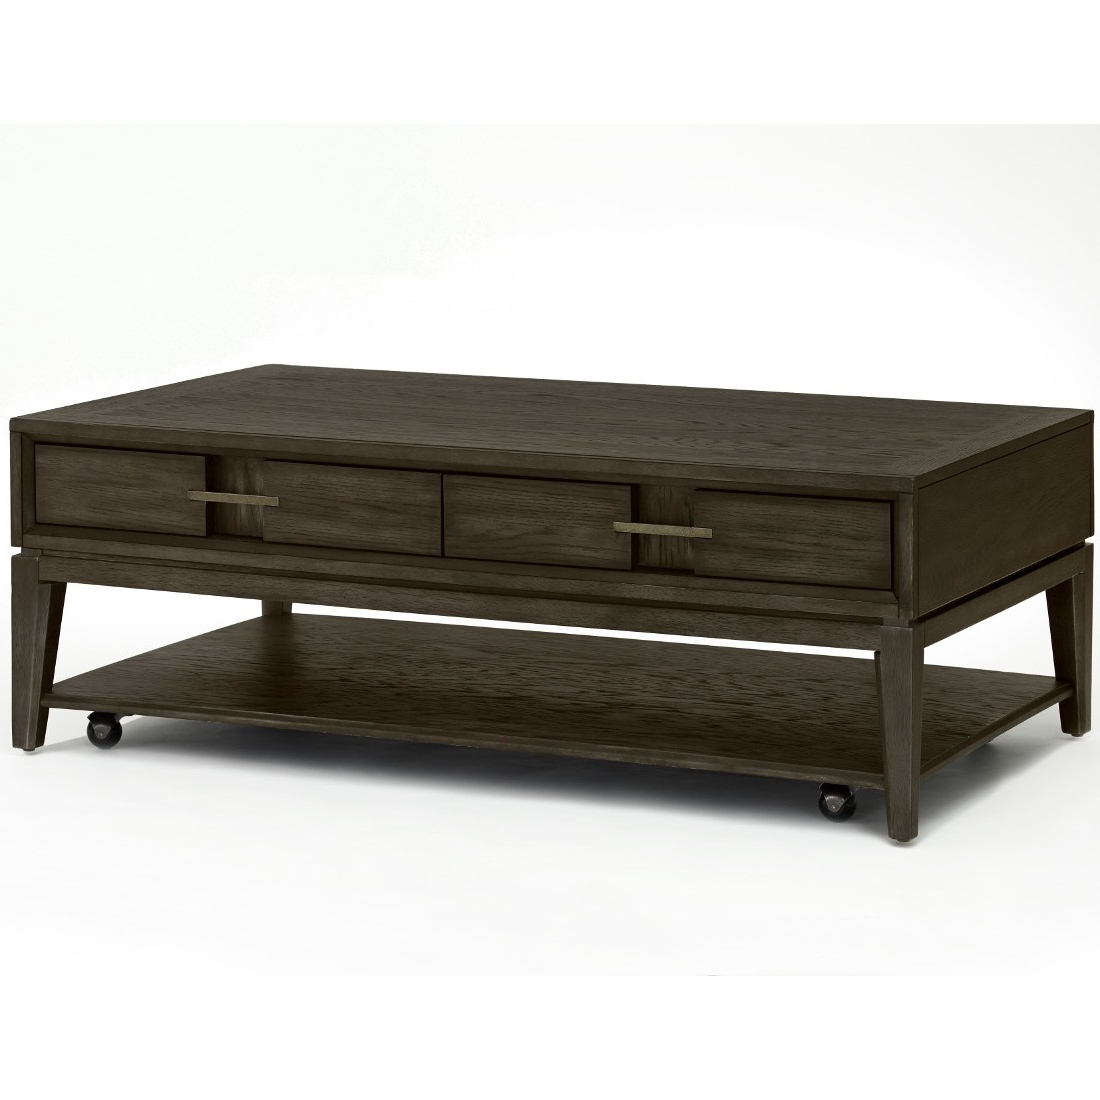 Magnussen Proximity Heights Rectangular Cocktail Table With Casters In Smoked Anthracite Intended For Most Current Winslet Cherry Finish Wood Oval Coffee Tables With Casters (View 16 of 20)